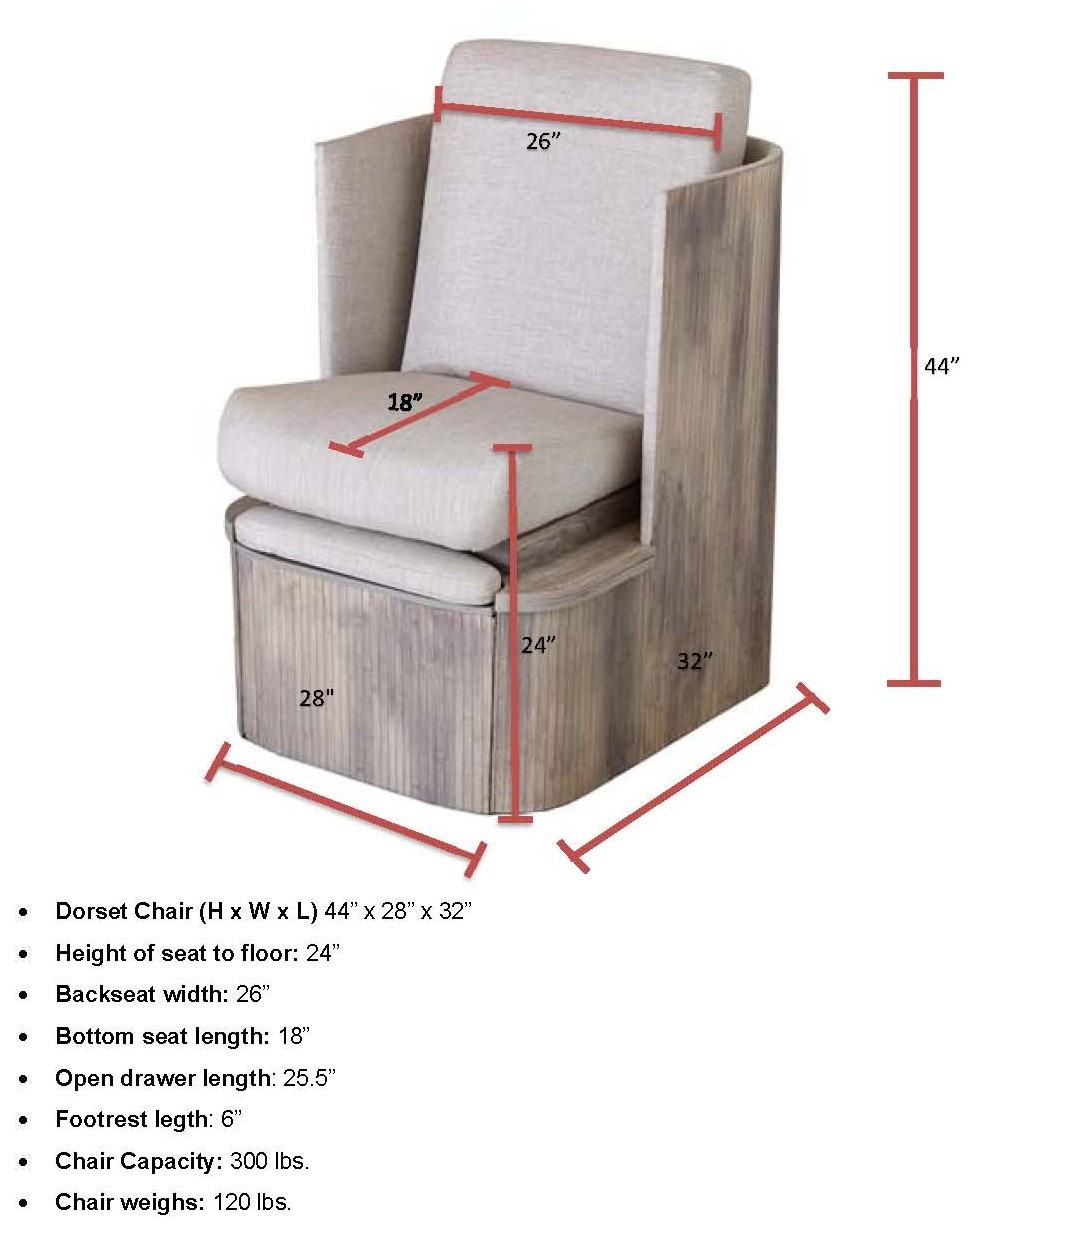 belava-dorset-lounge-style-specifications.jpg